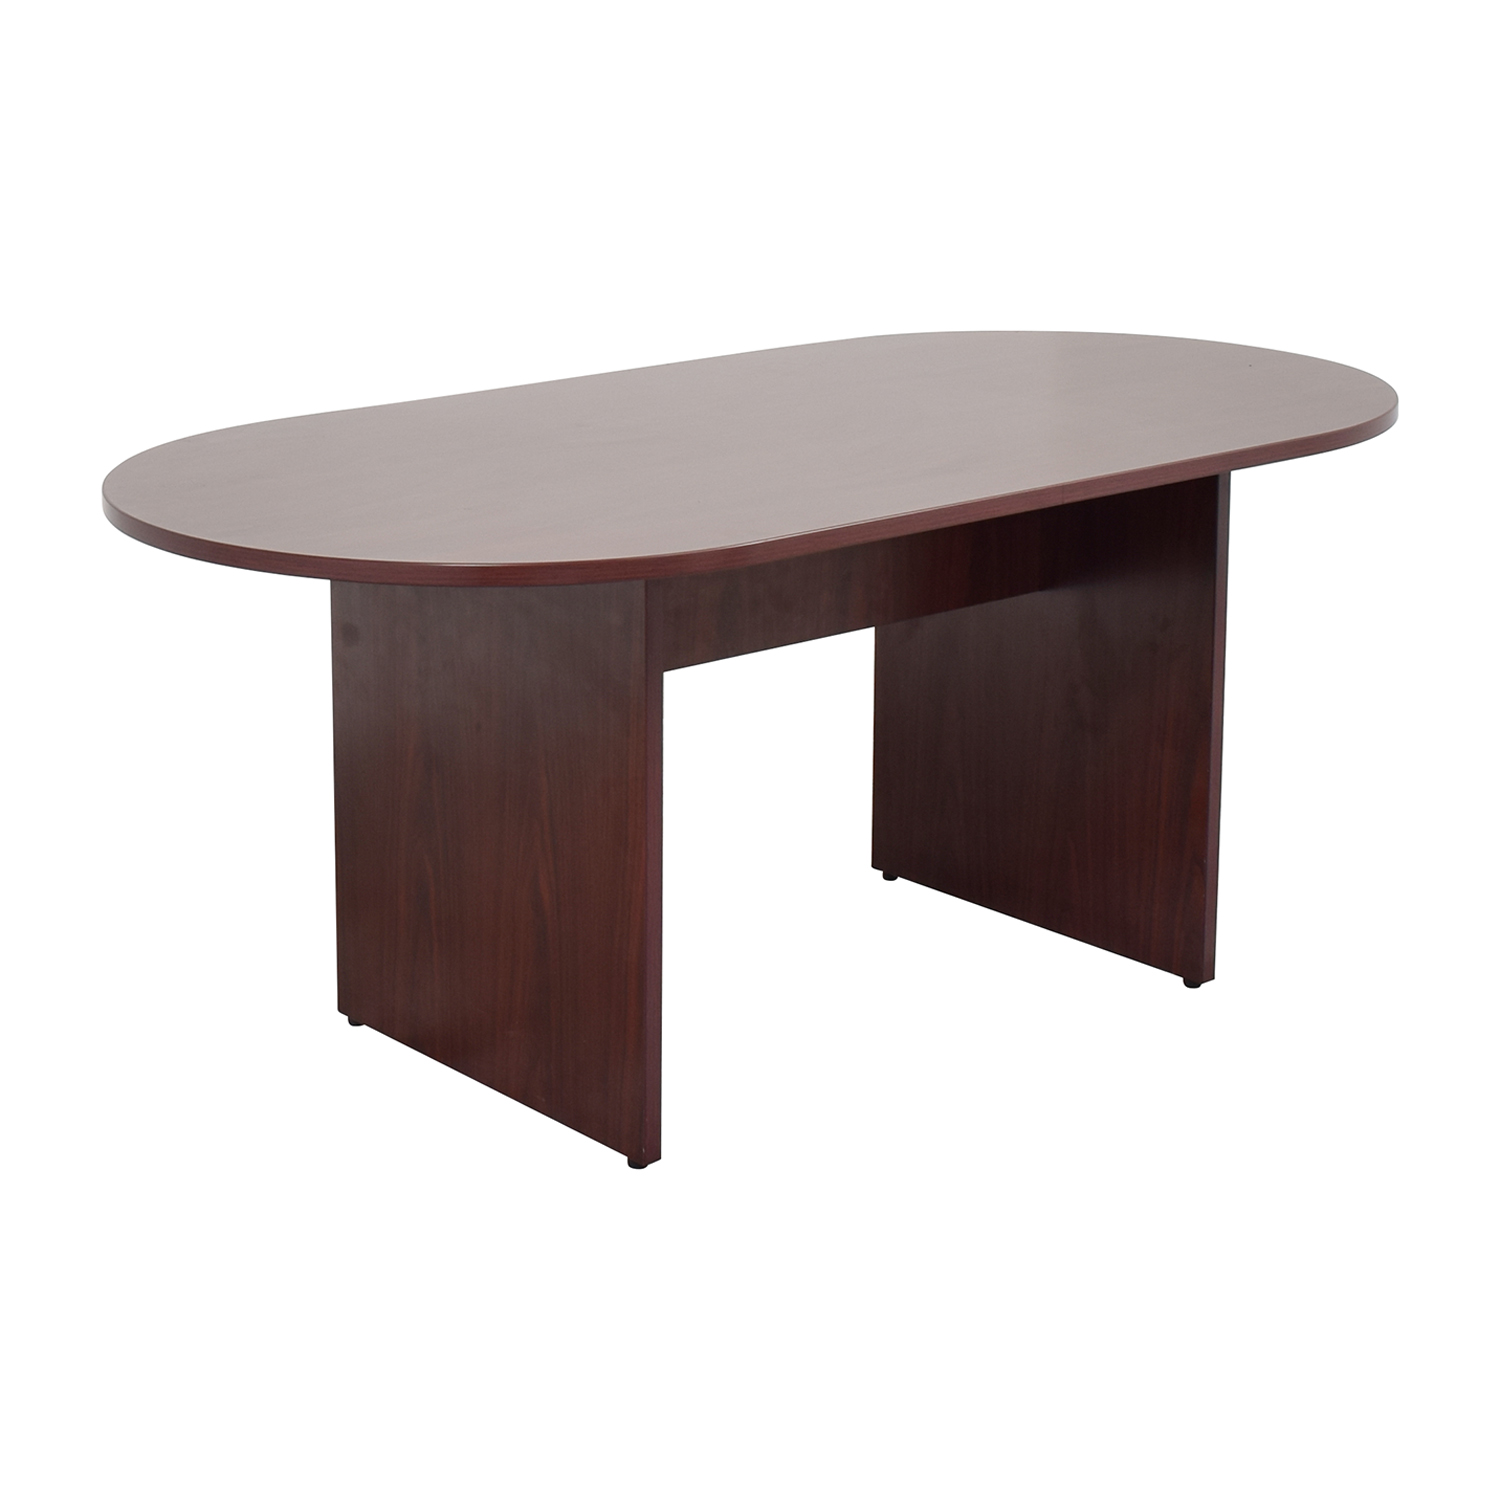 Hon Hon Oval Conference Room Table ct